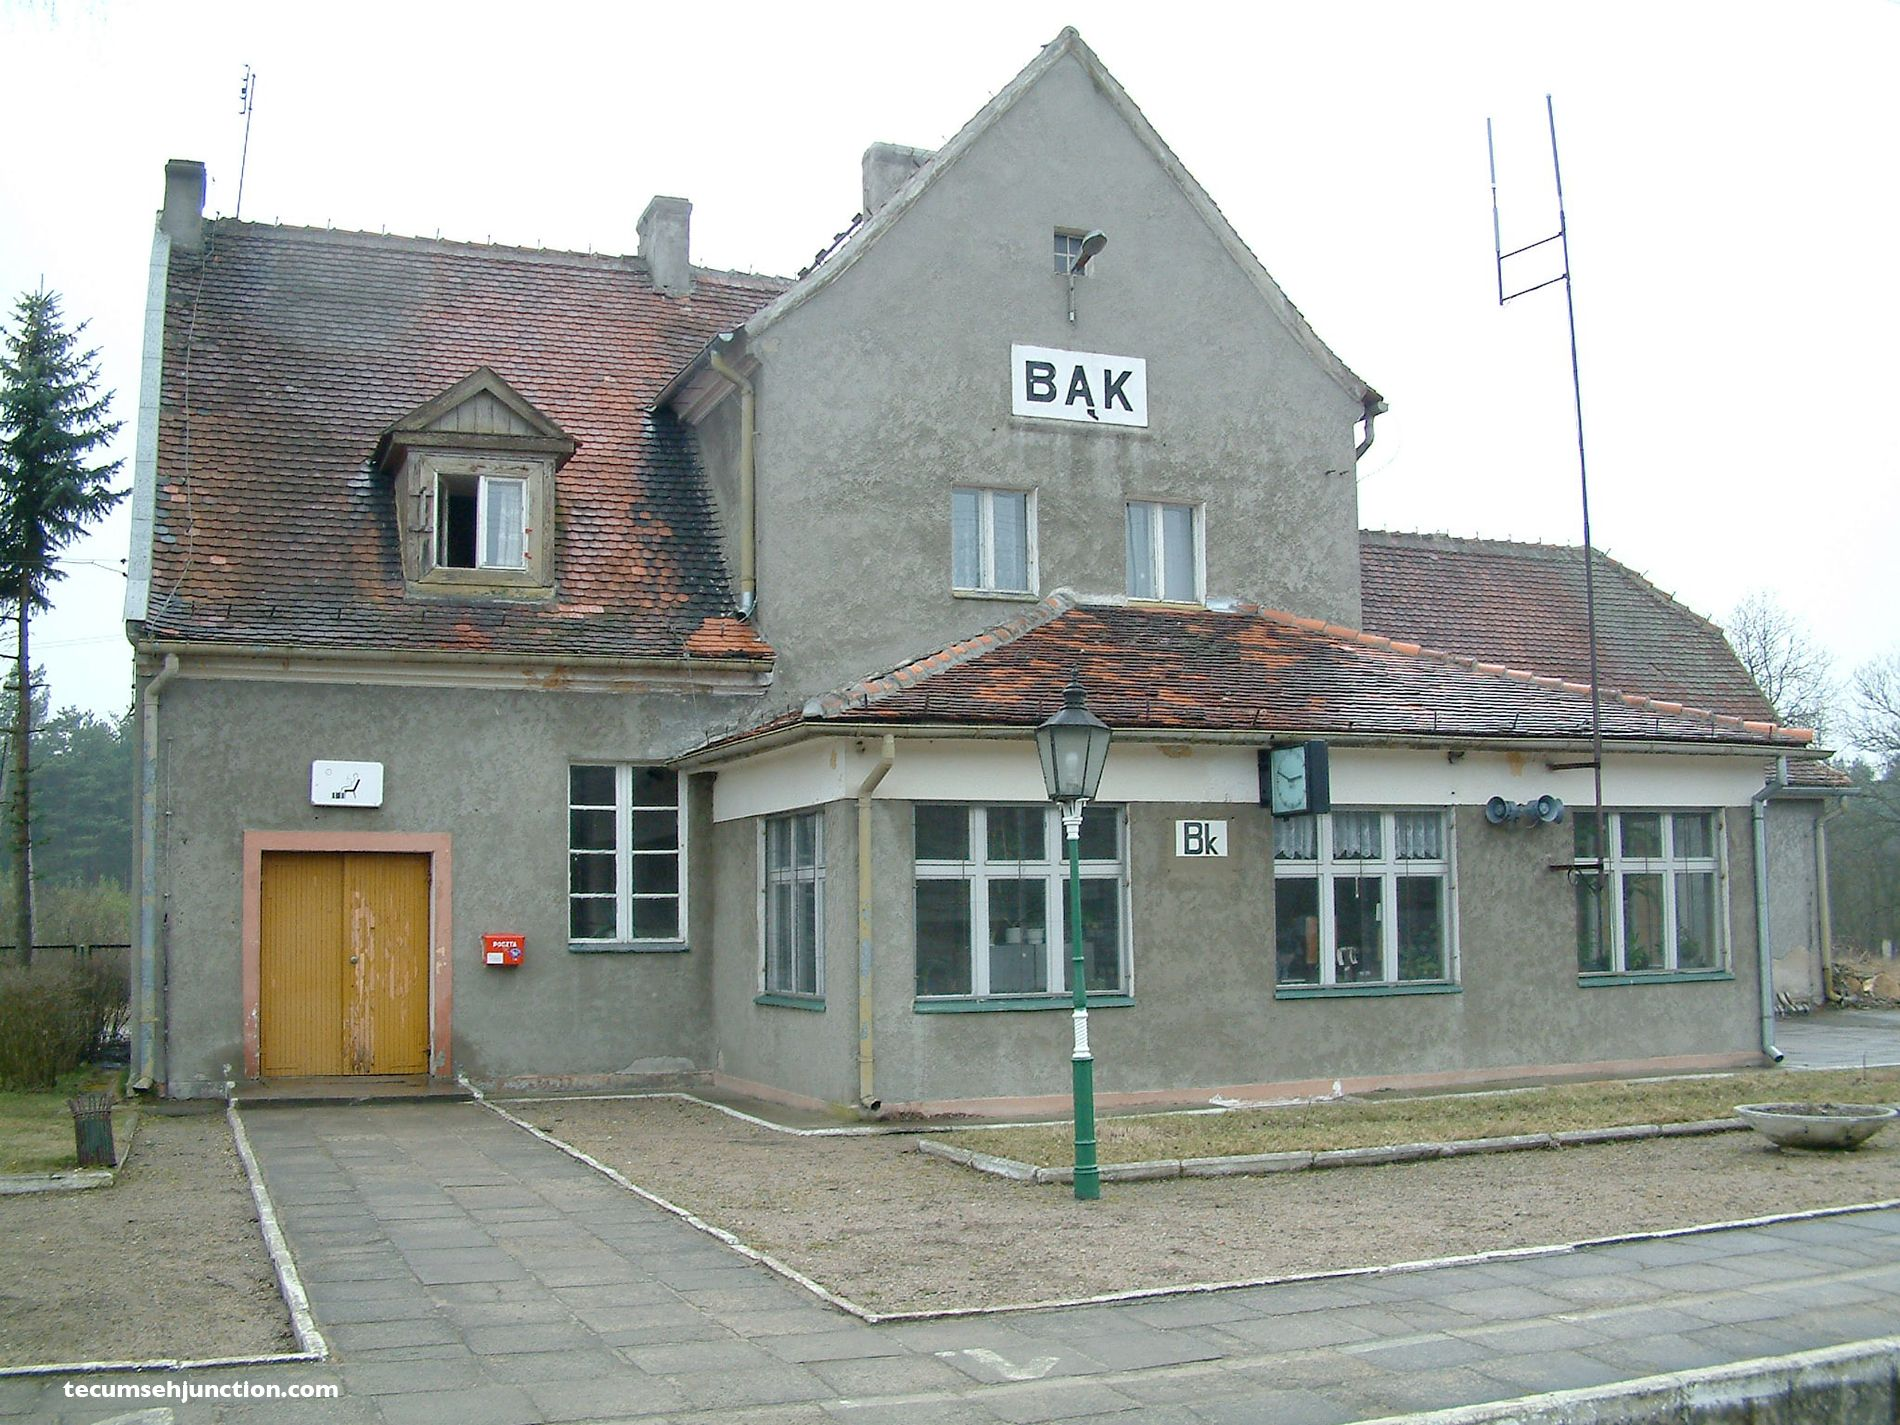 Bąk station with the signal box in front